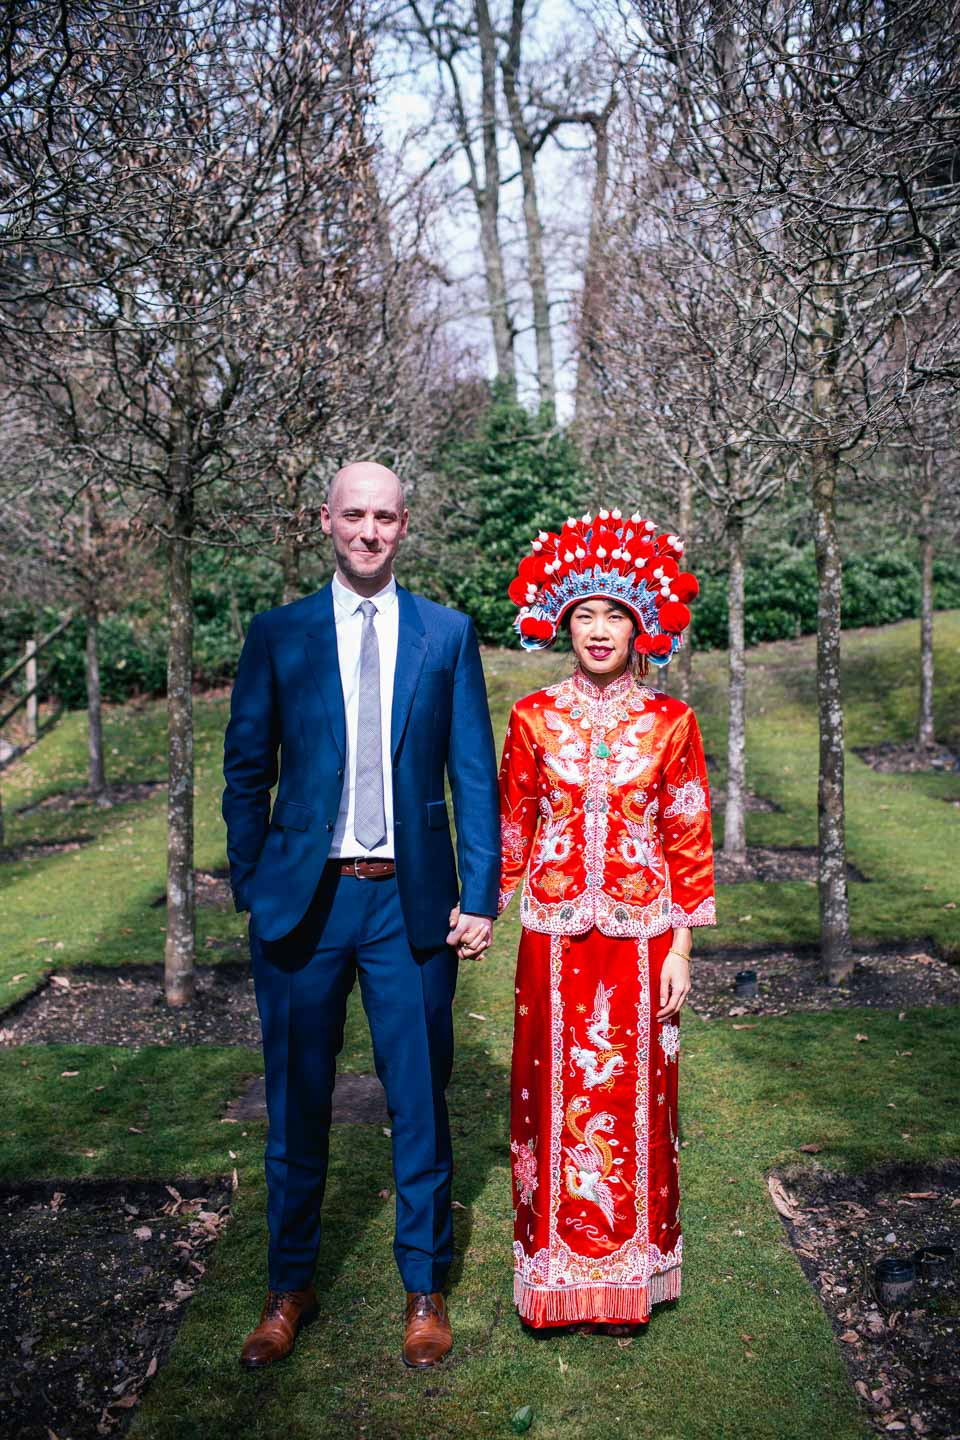 bride and groom in traditional Chinese wedding outfits